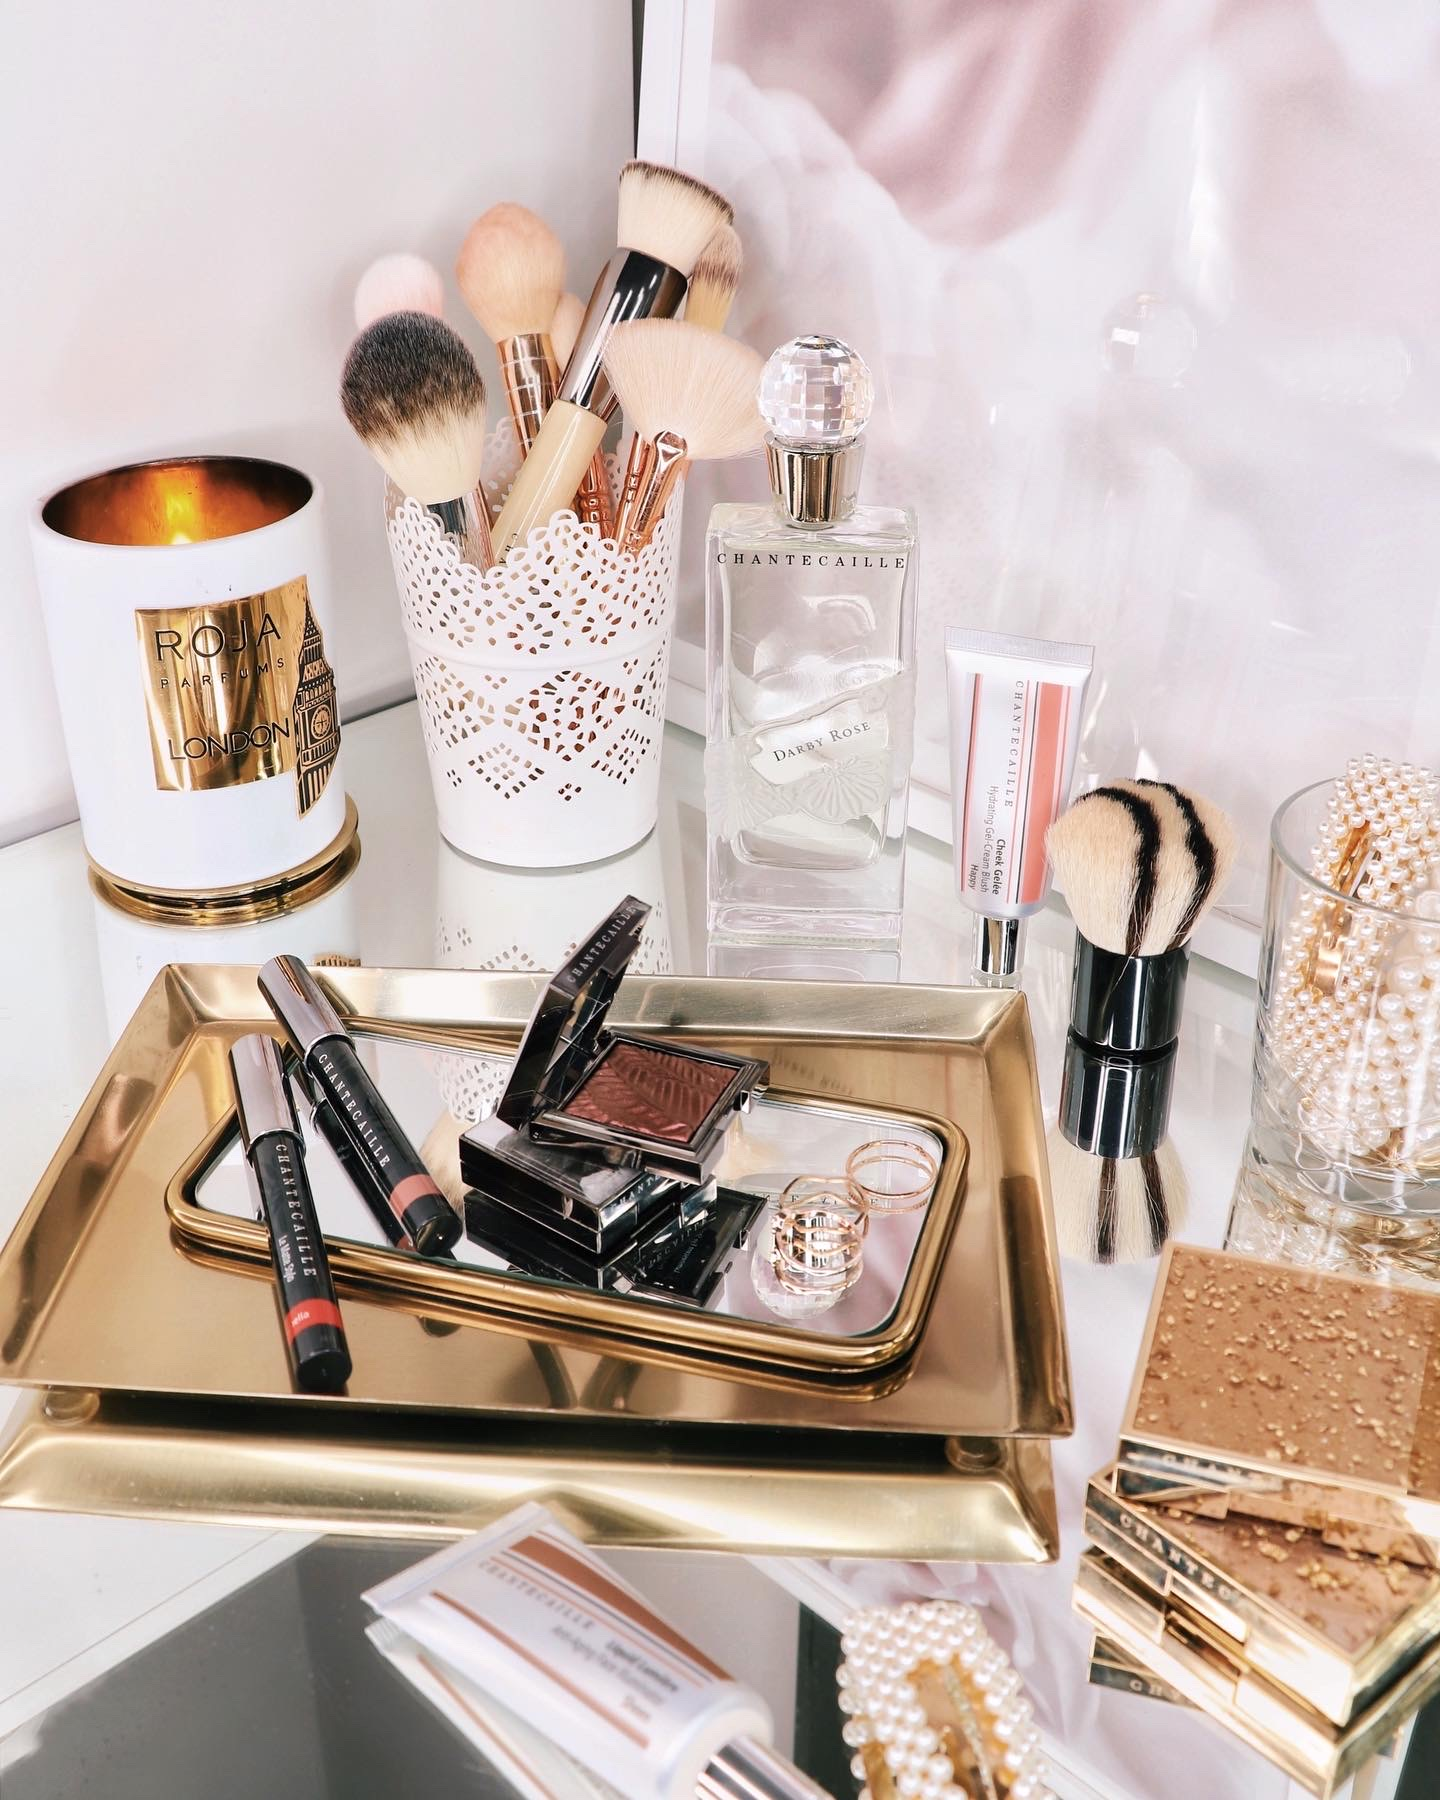 Chantecaille Holiday 2020 Collection Review & Swatches